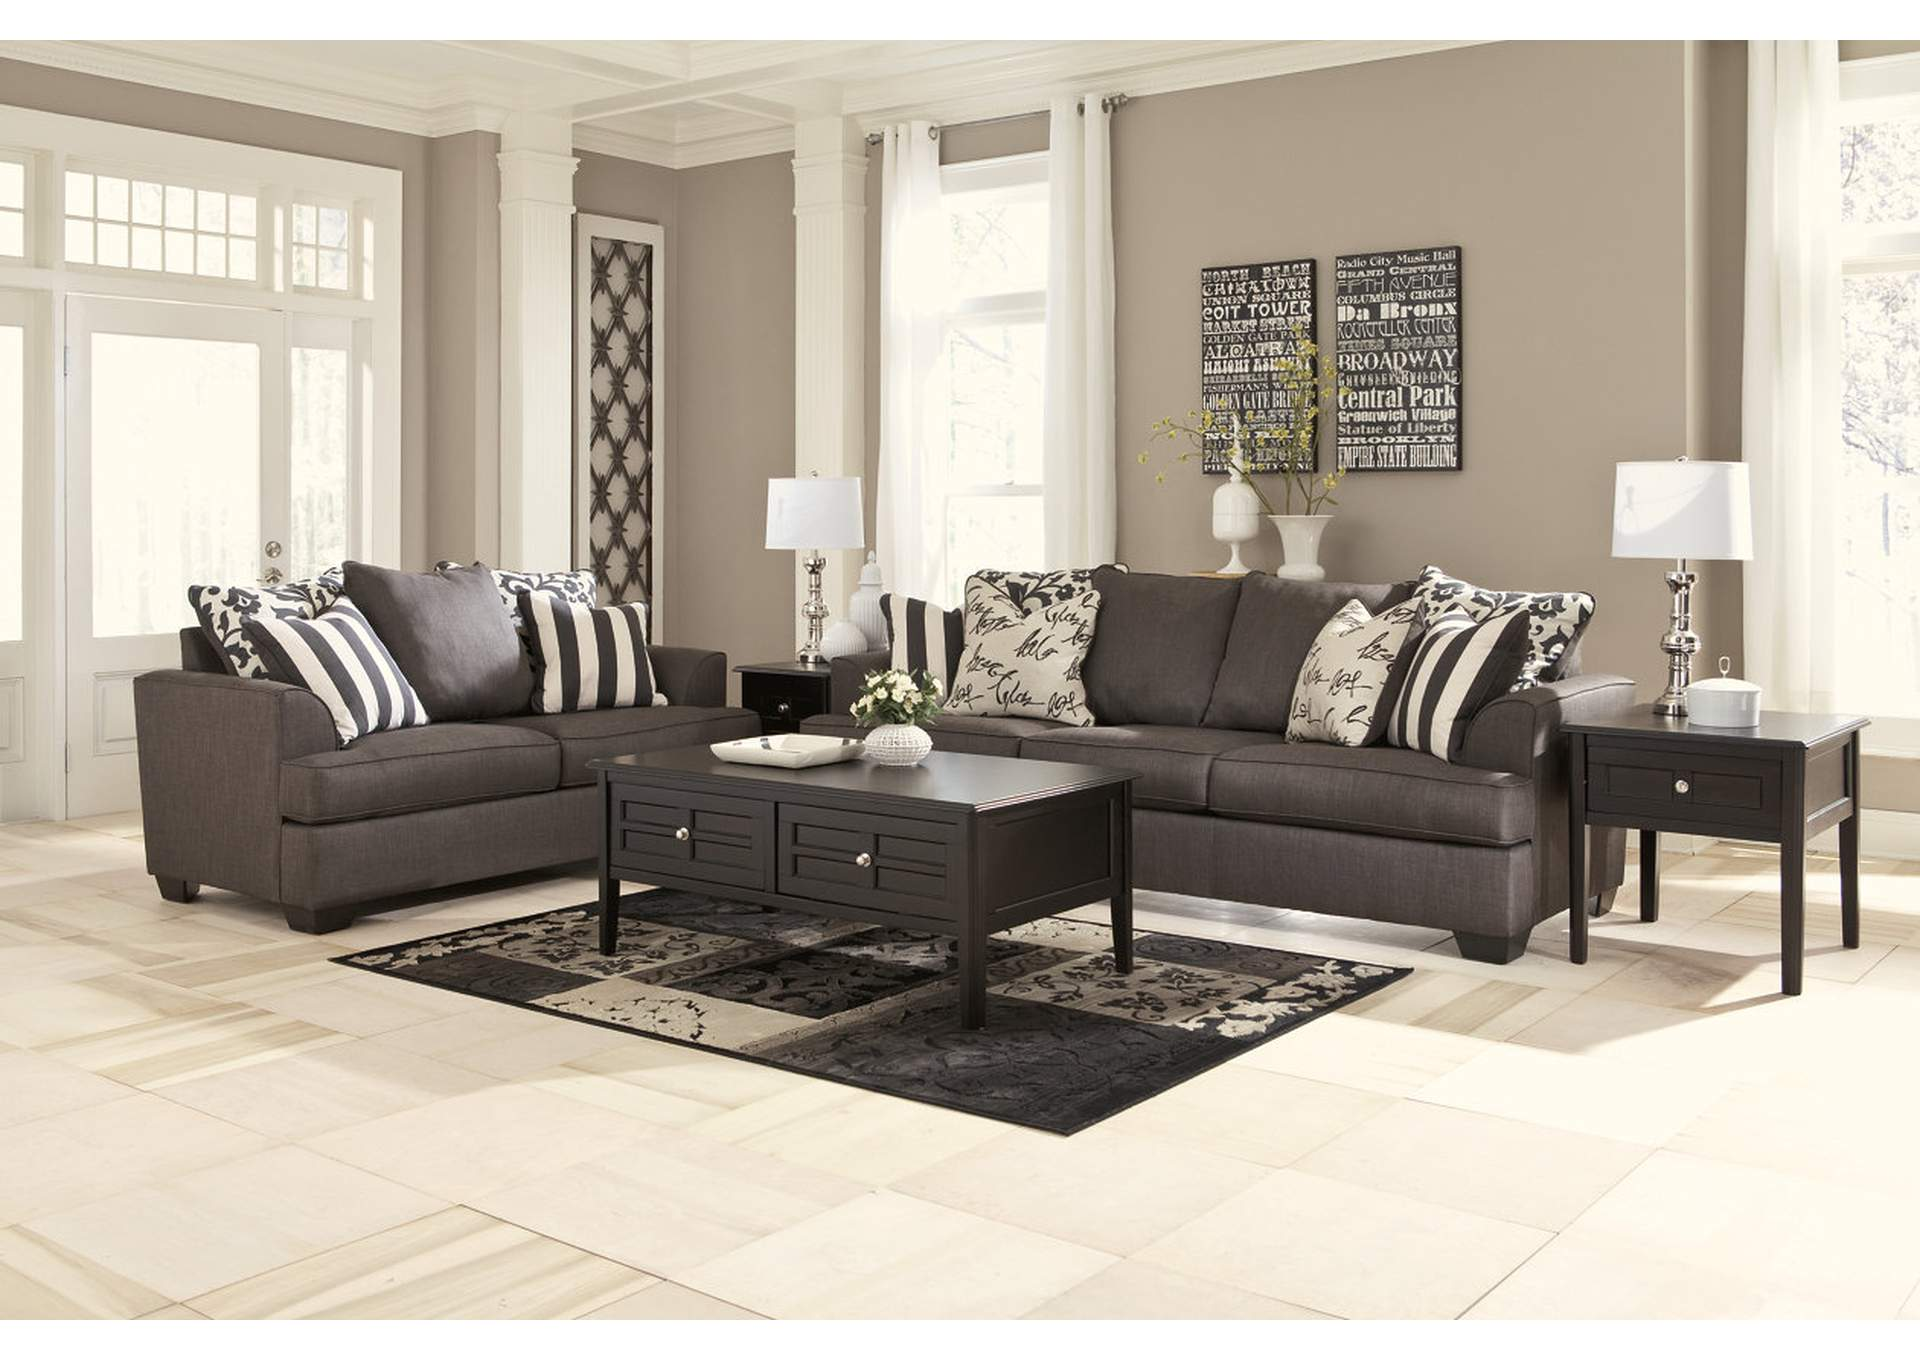 Levon Charcoal Sofa U0026 Loveseat,Signature Design By Ashley